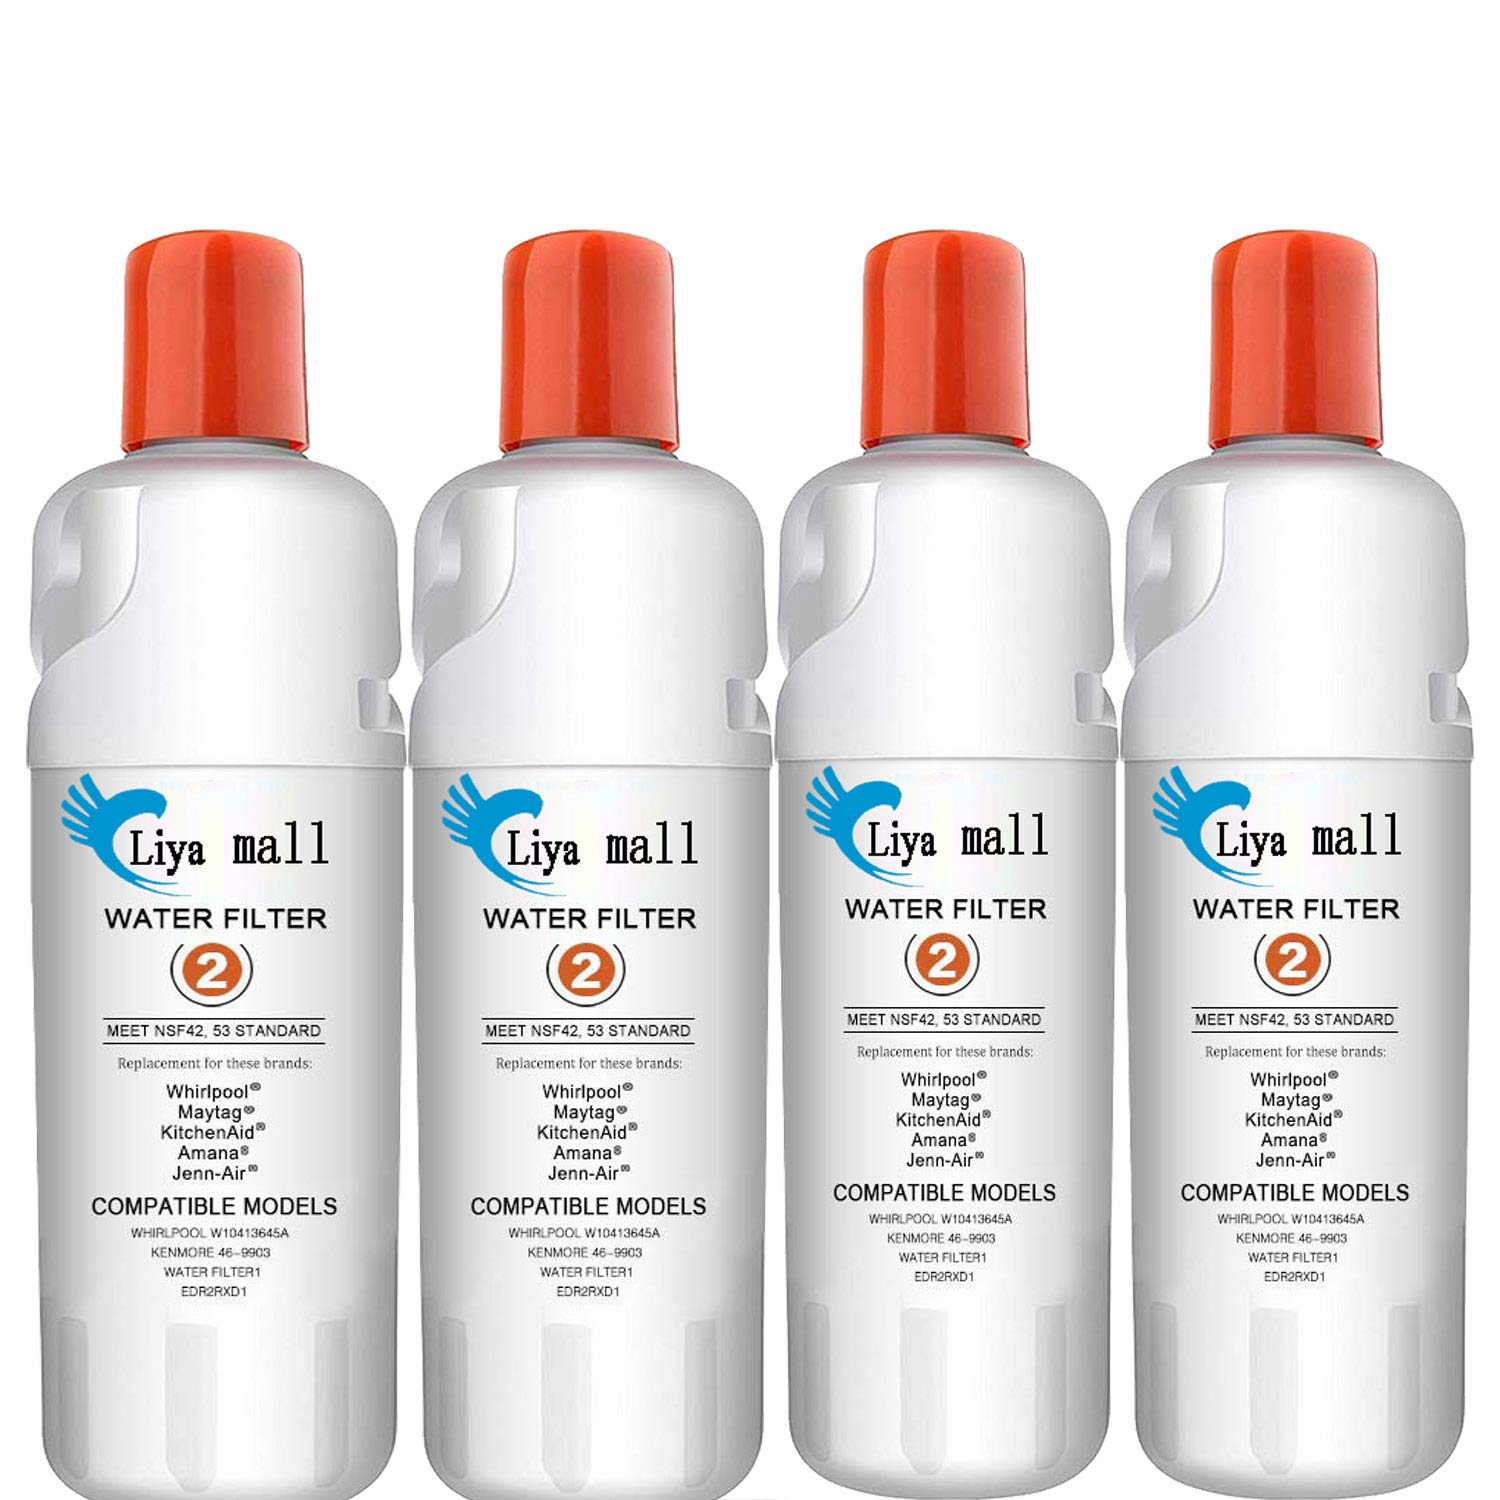 Liya Mall W-10413645-A ED-R2RXD1Replacement Ken-More 46-9082,Refrigerator Water Filtration Pack of 4